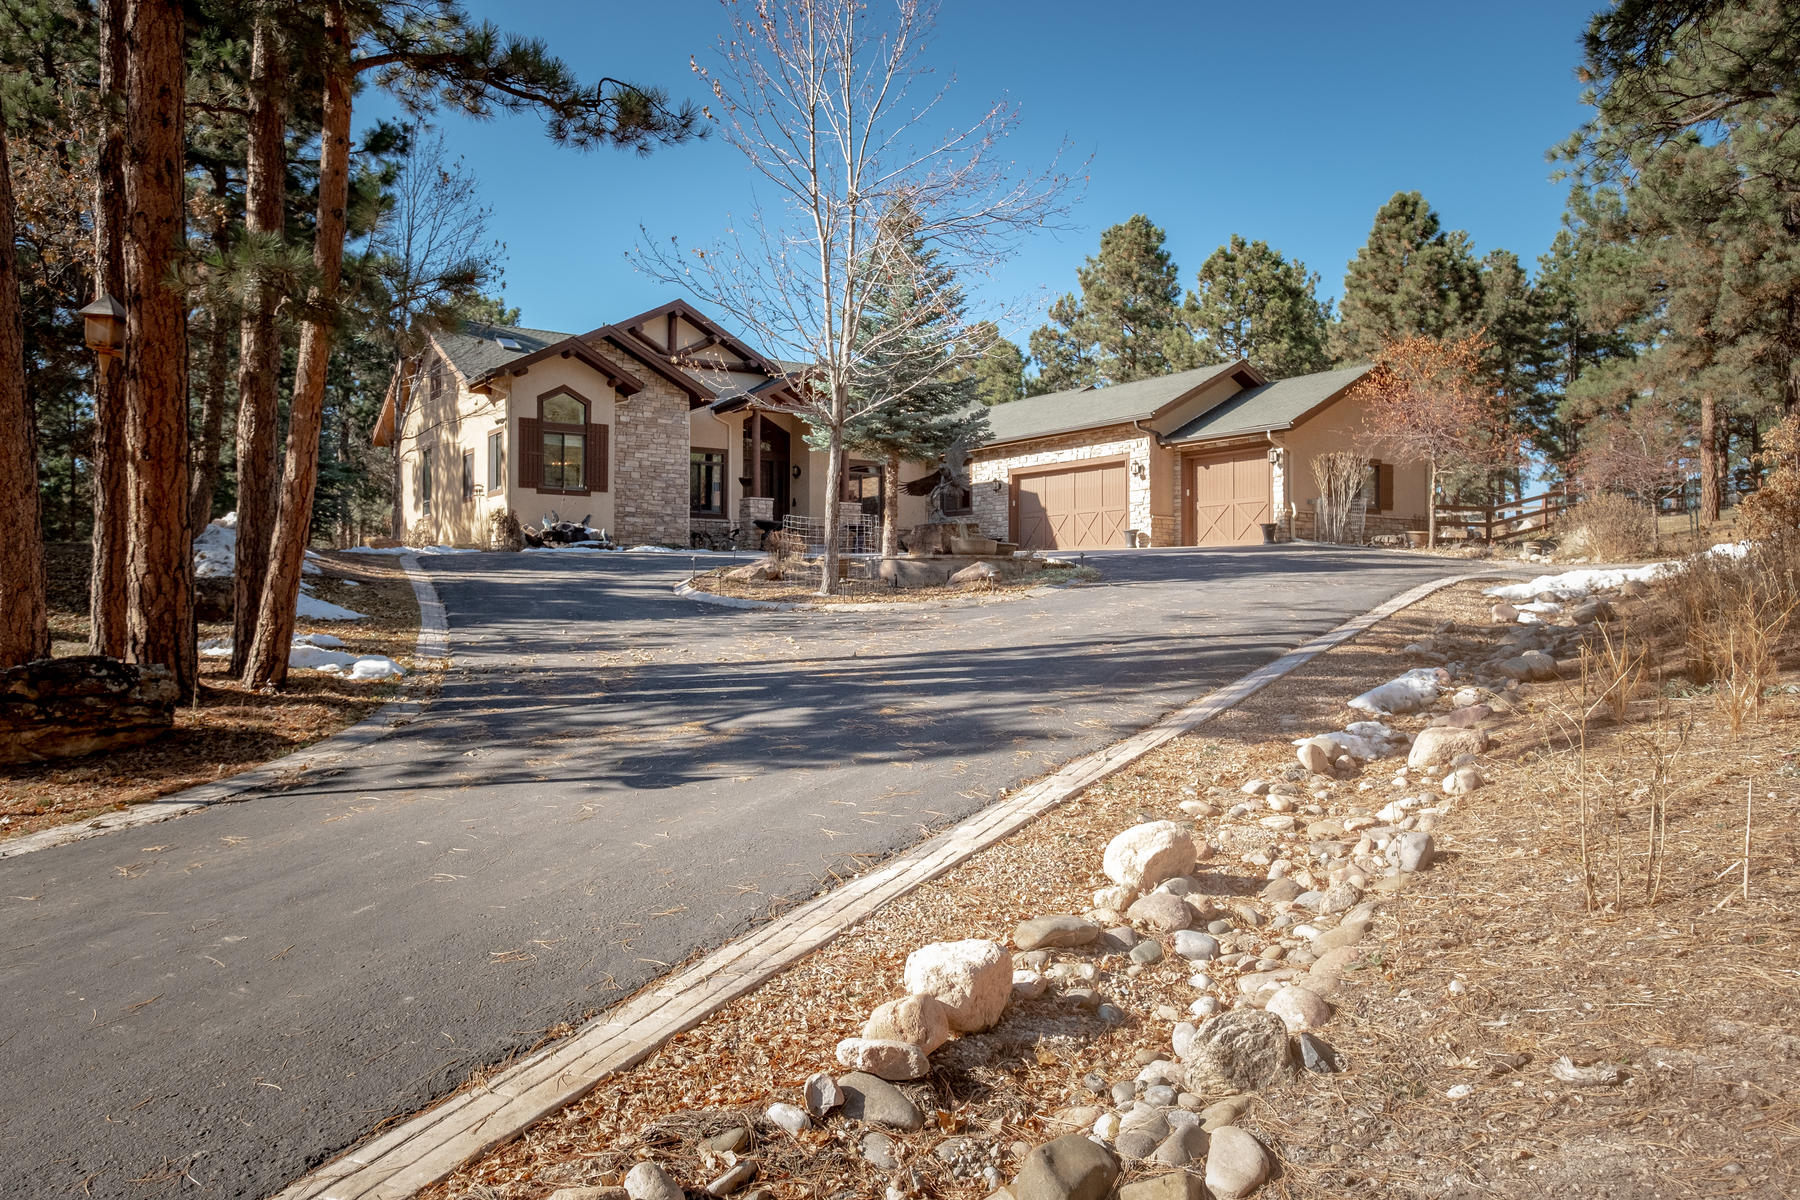 Single Family Homes for Sale at Natural beauty and rustic luxury begin here. 10259 E State Highway 86 Hwy Franktown, Colorado 80116 United States